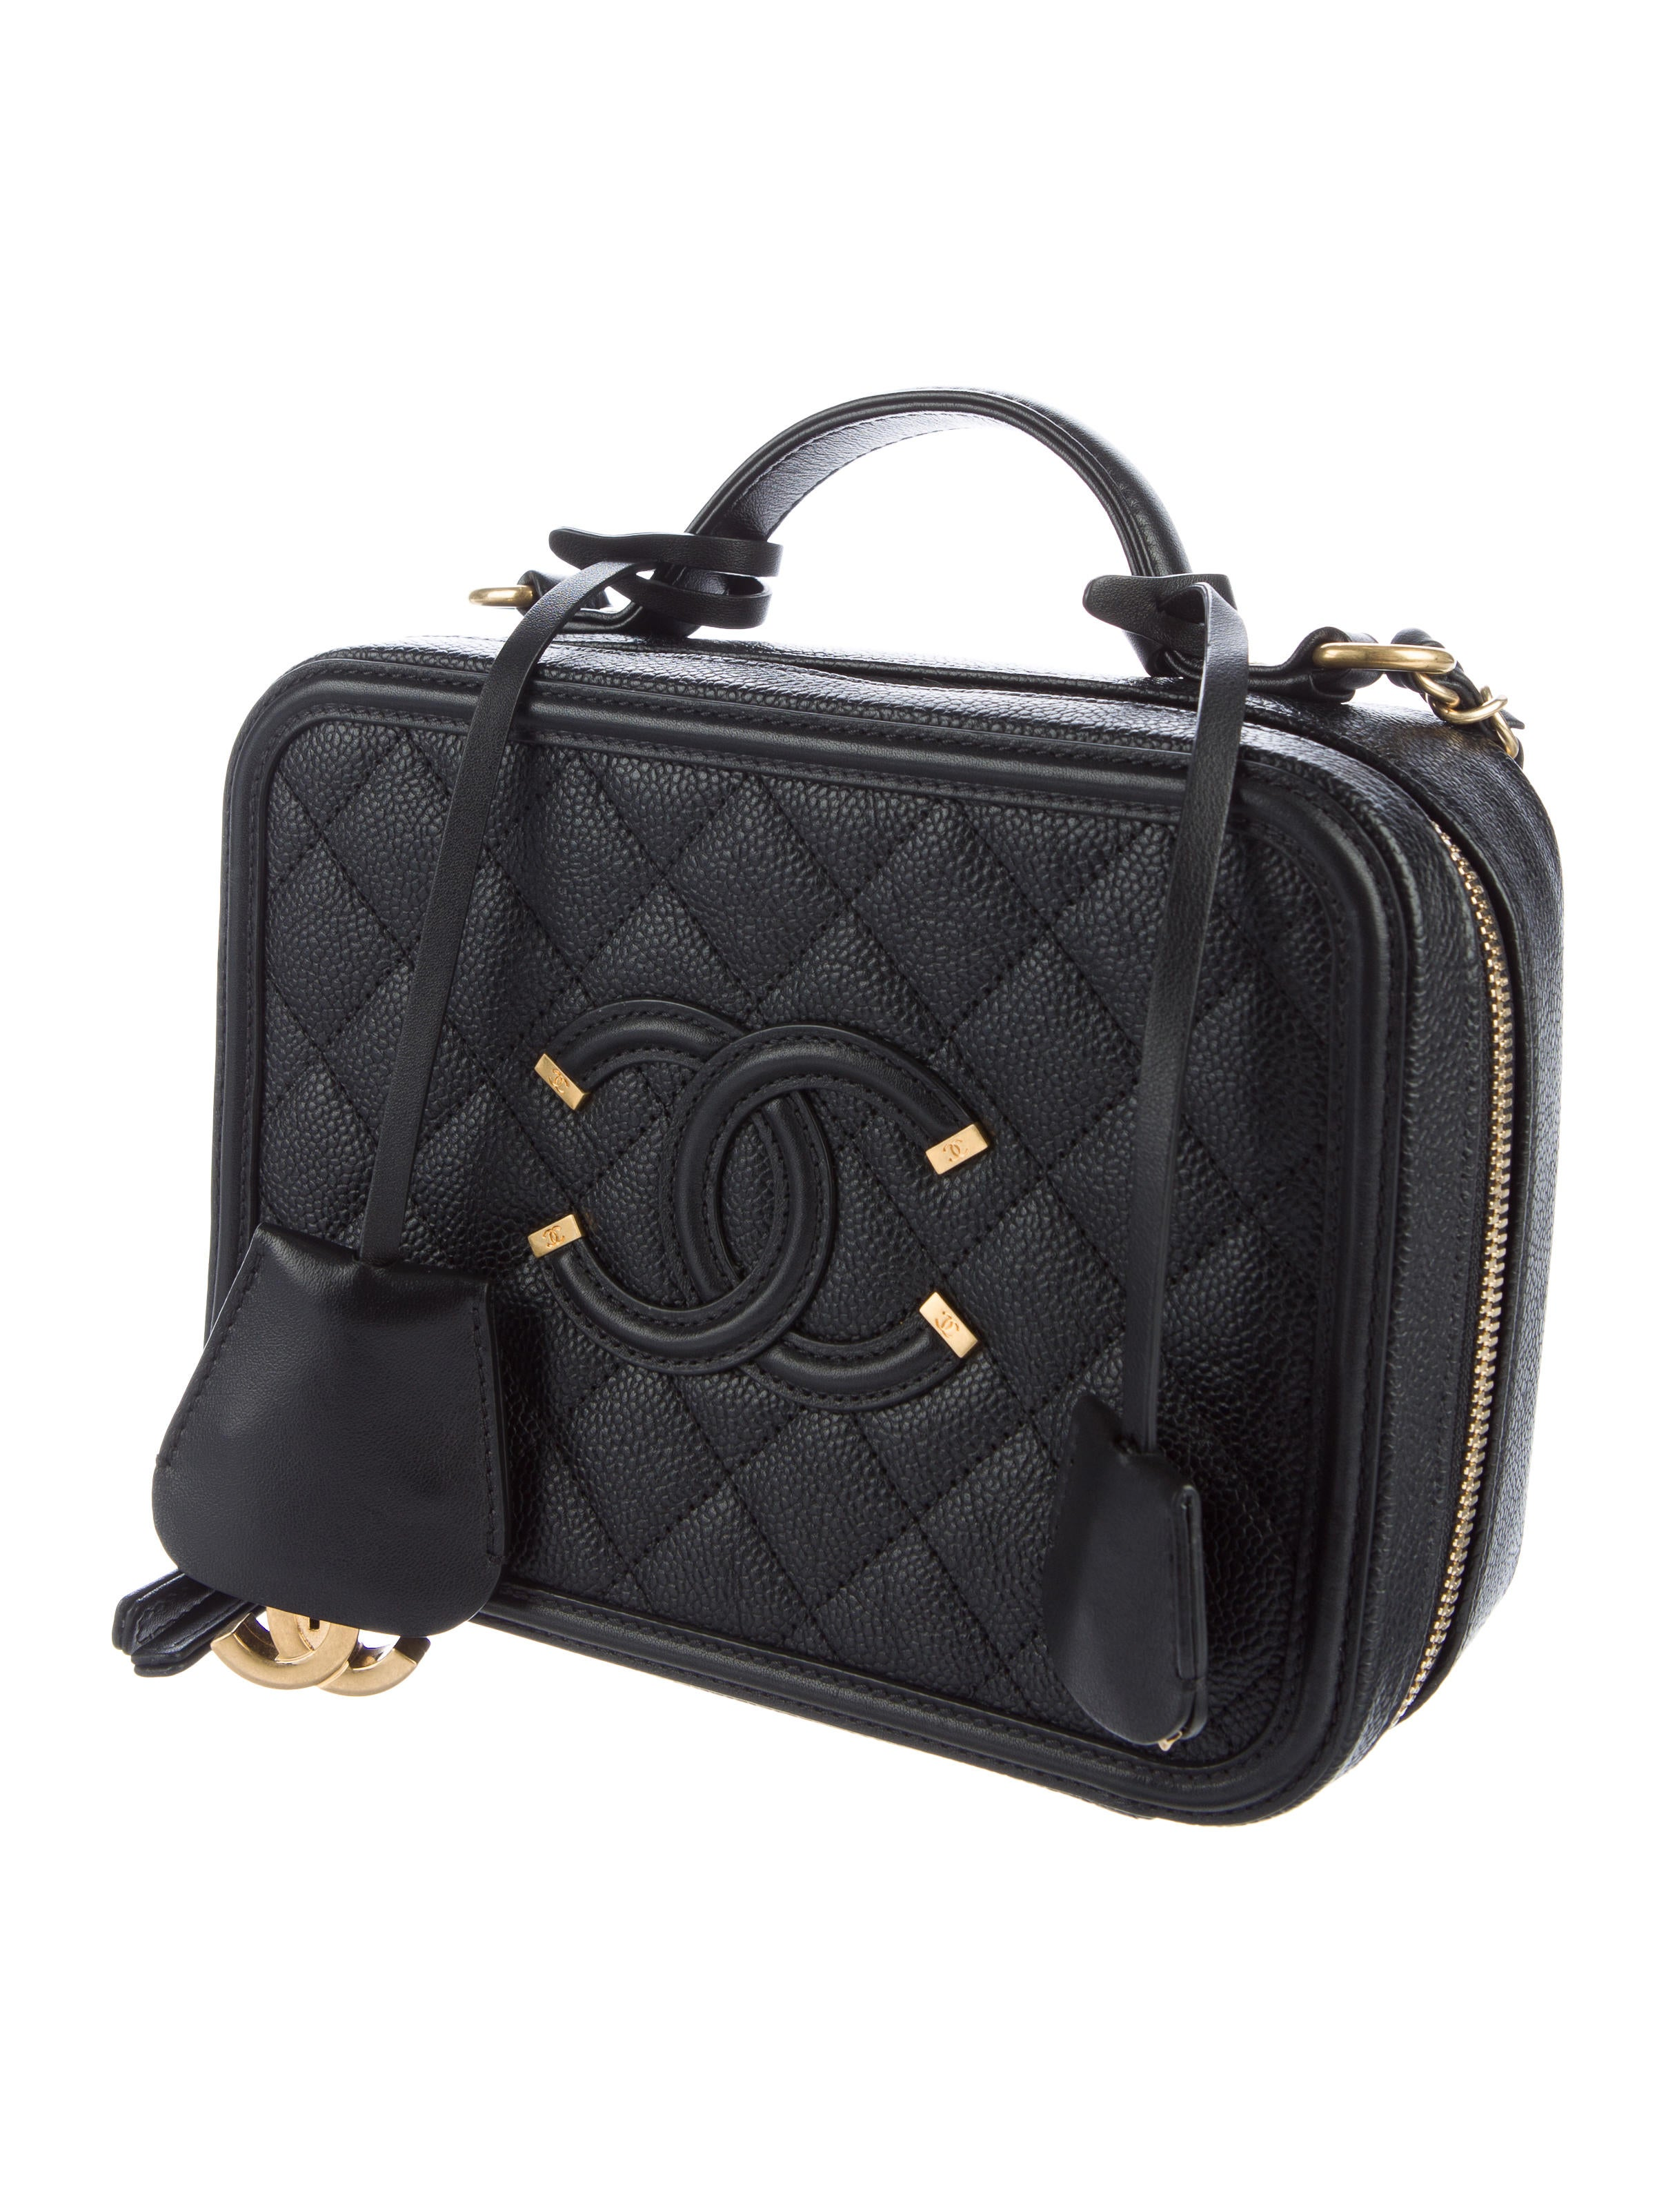 Chanel Cc Filigree Vanity Case Bag Handbags Cha145207